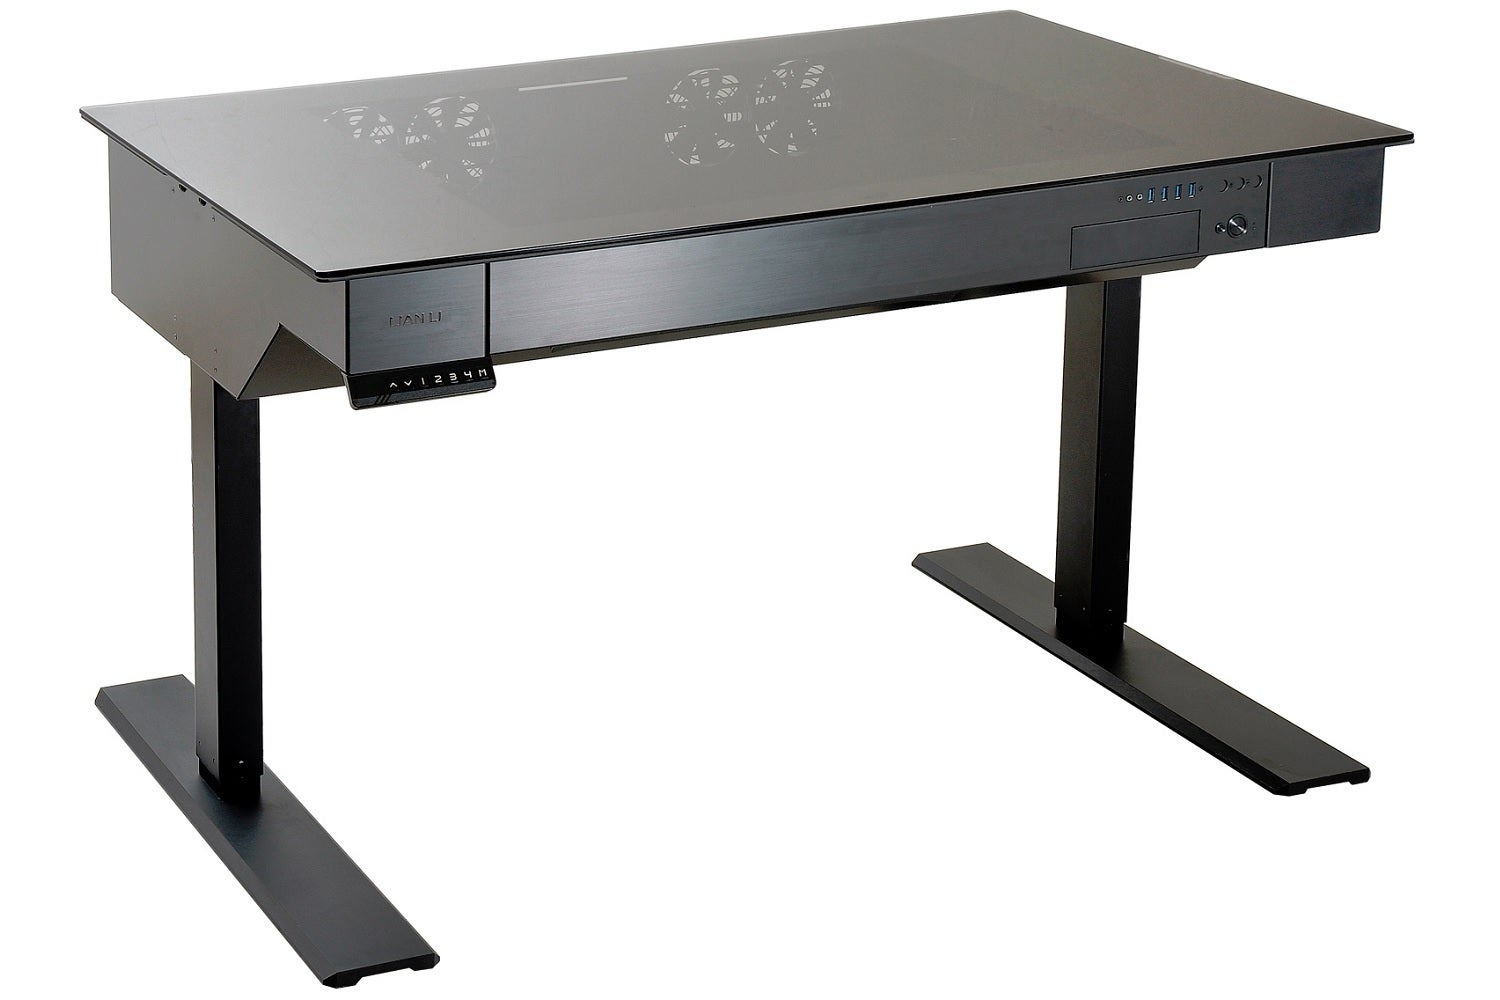 LianLis wild motorized standing desk doubles as a case for